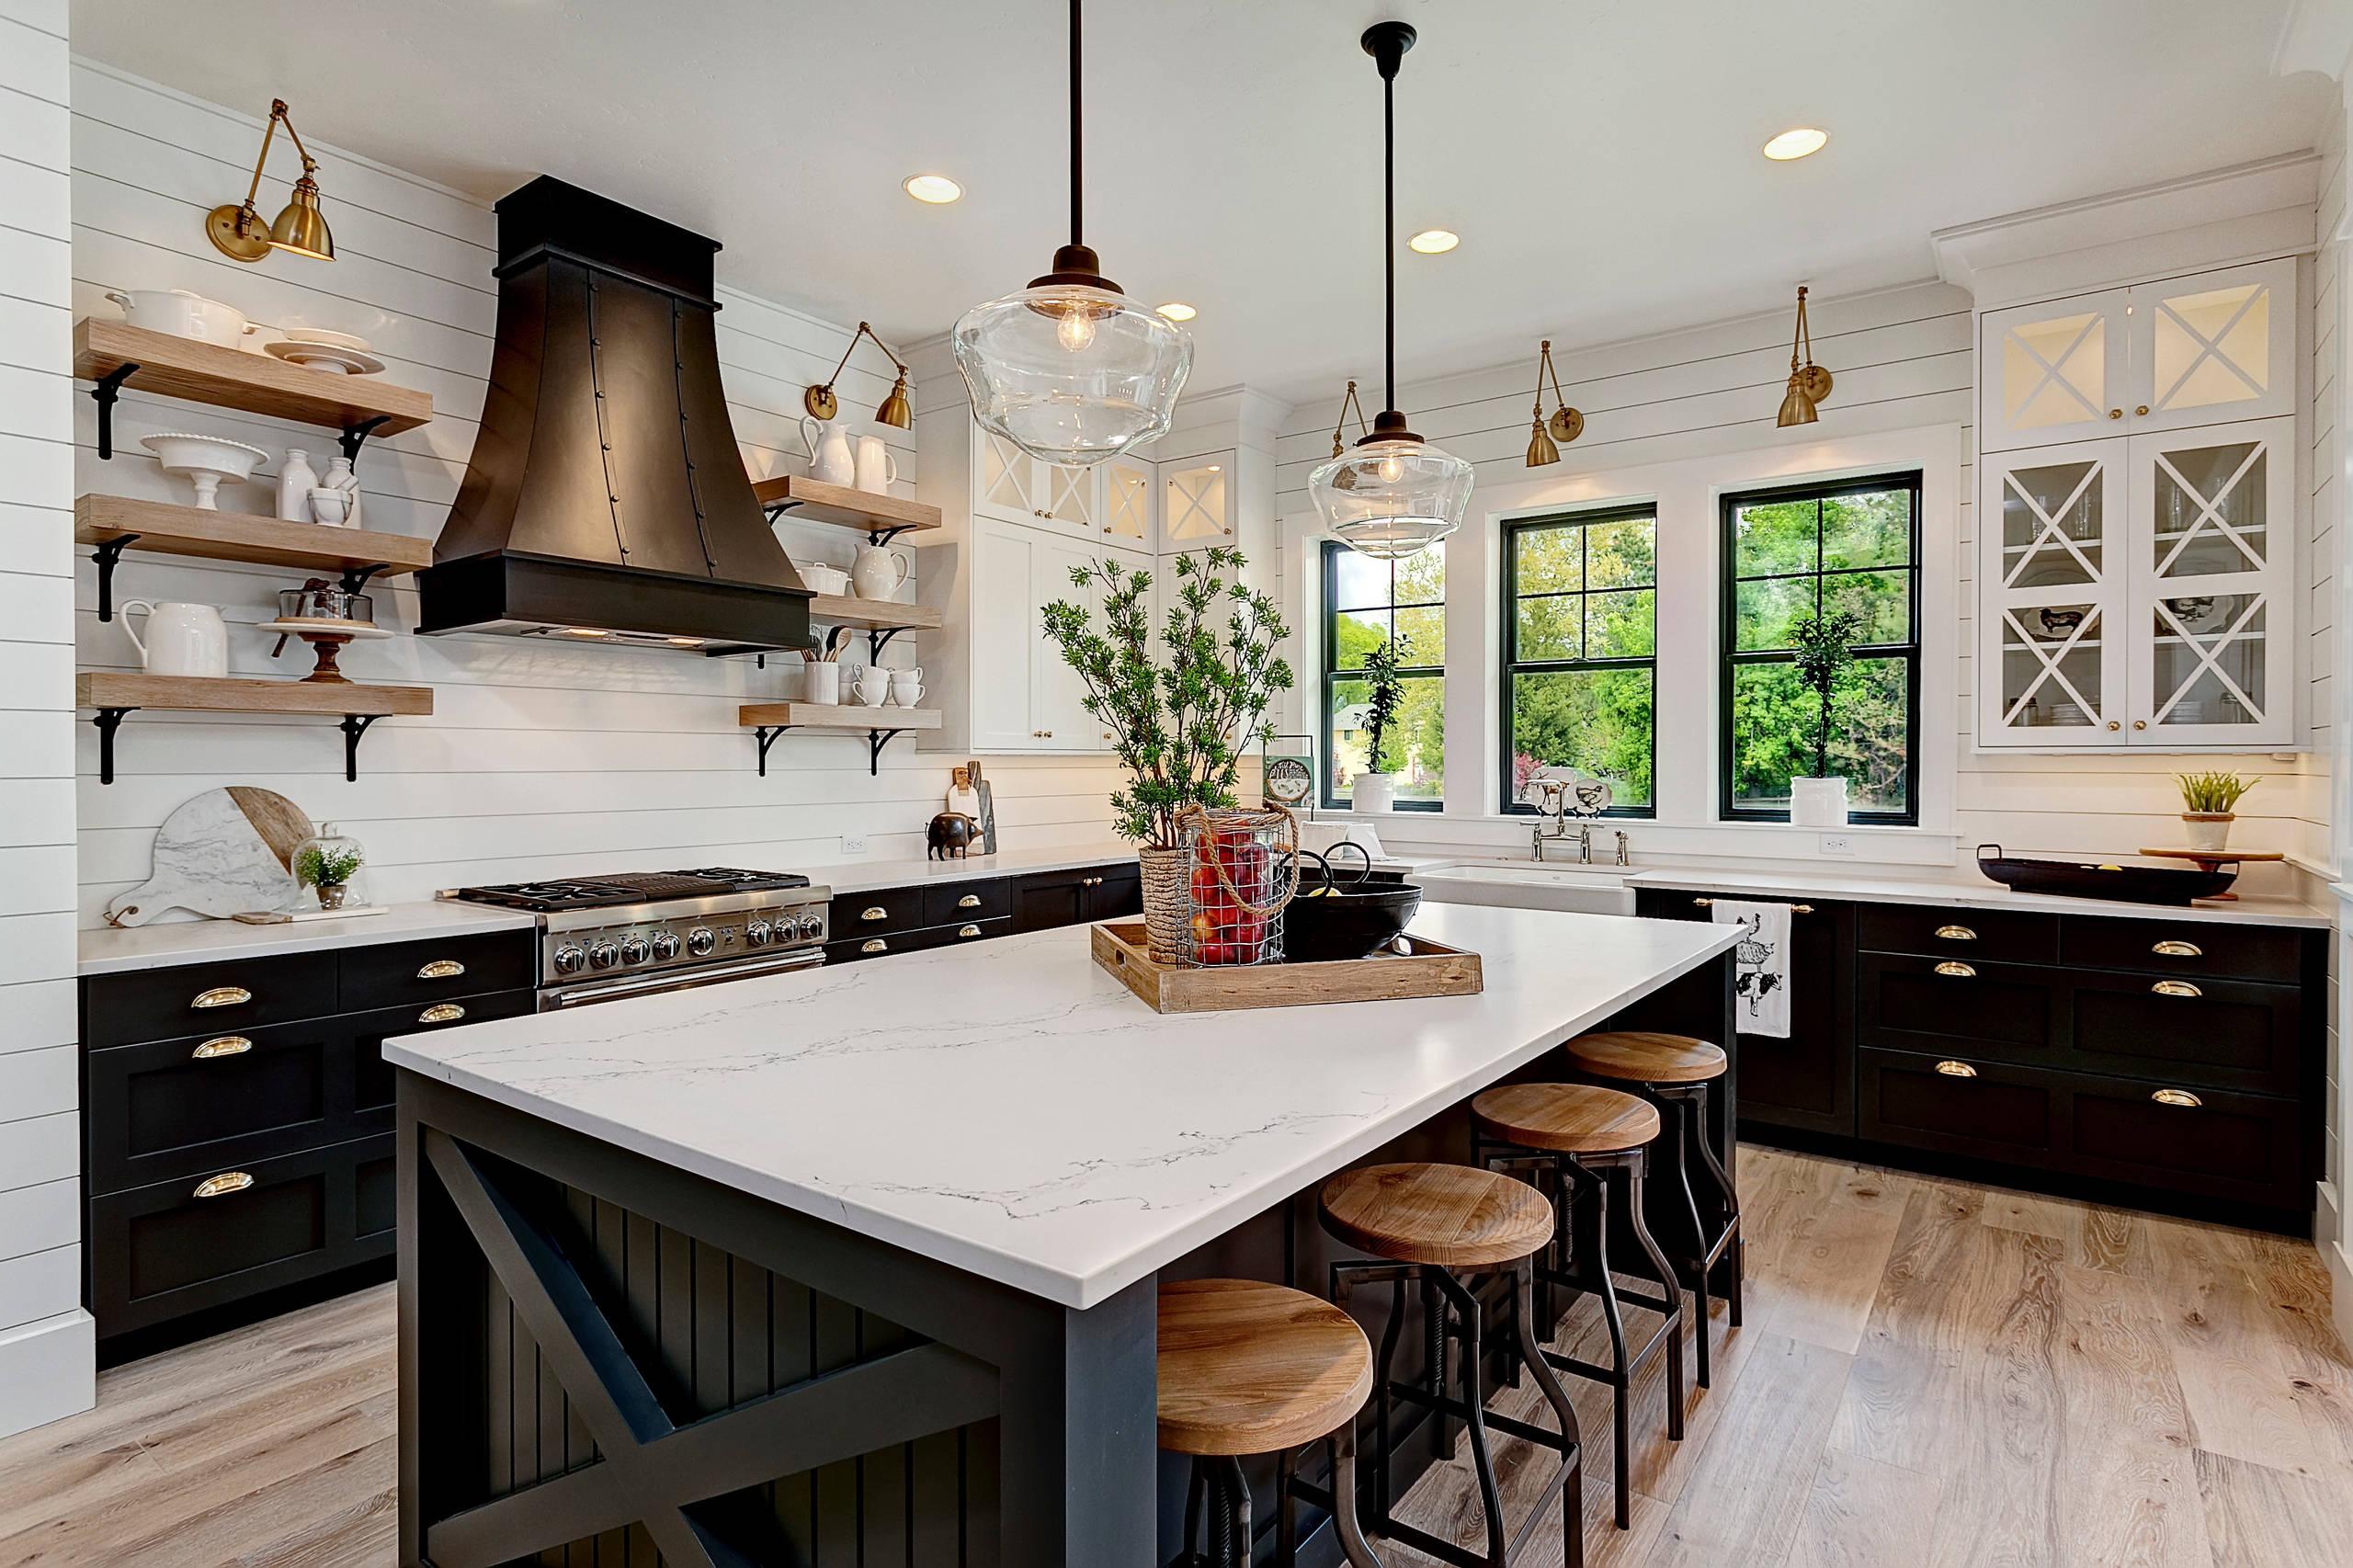 75 Beautiful Farmhouse Kitchen With Black Cabinets Pictures Ideas December 2020 Houzz